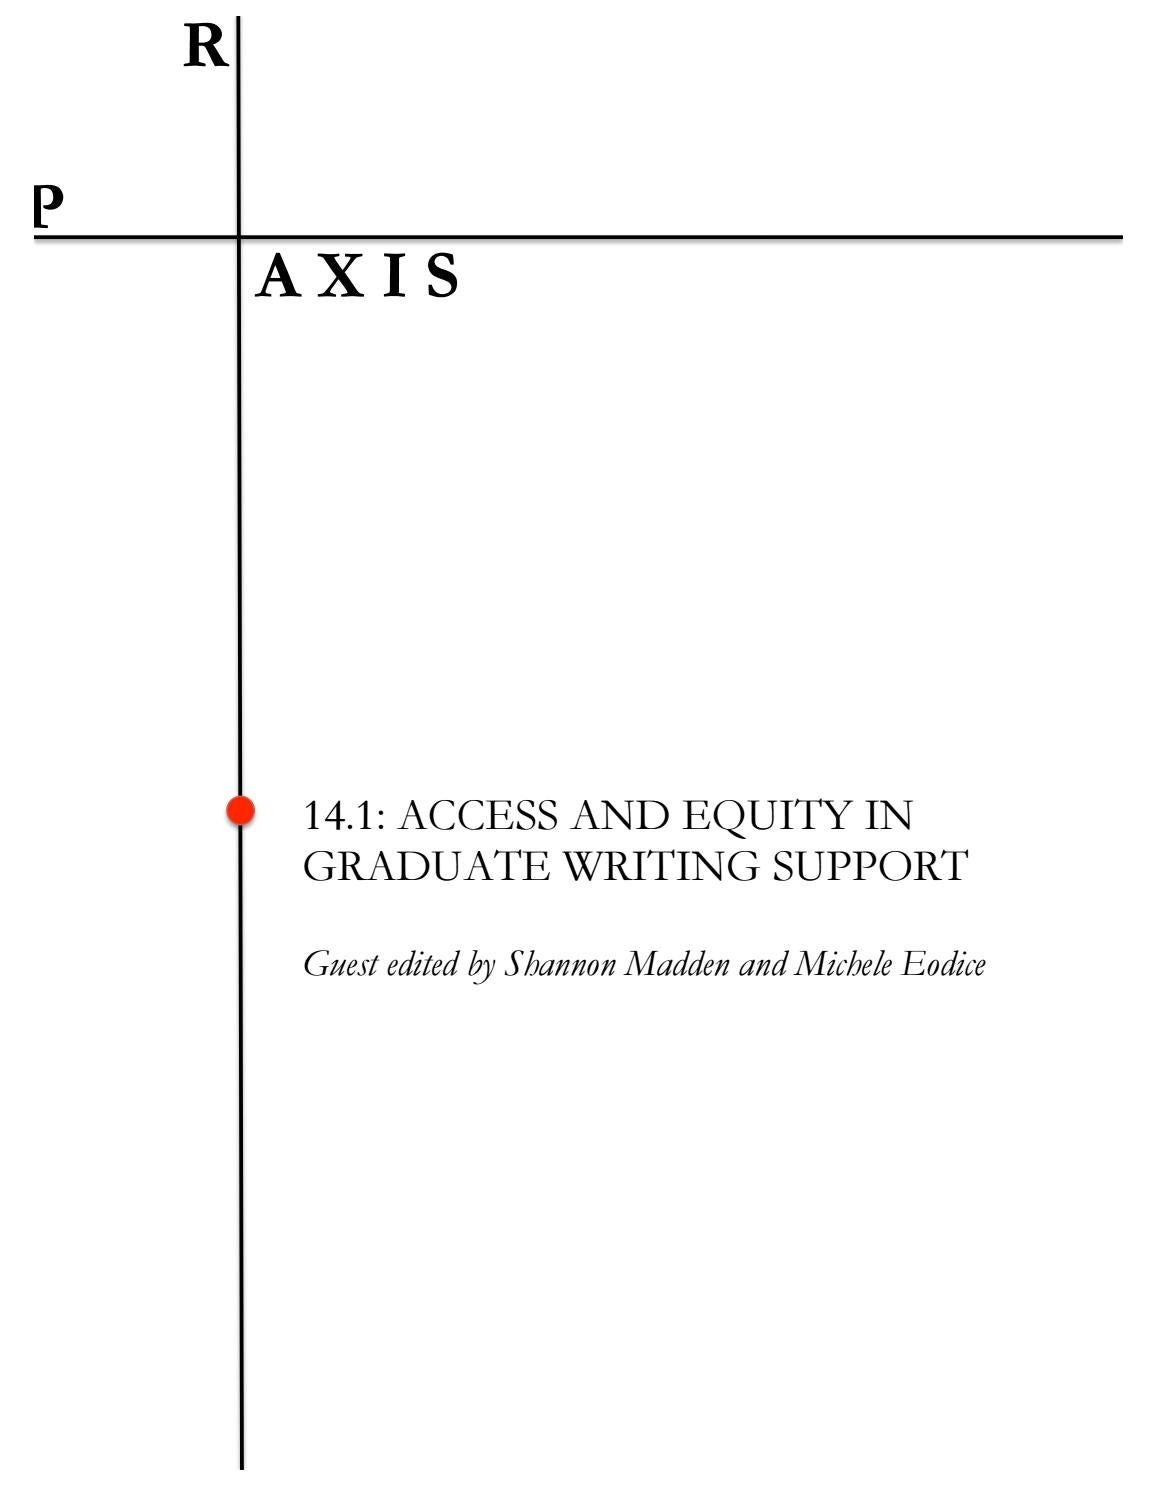 Praxis 14.1 Access And Equity In Graduate Writing Support By